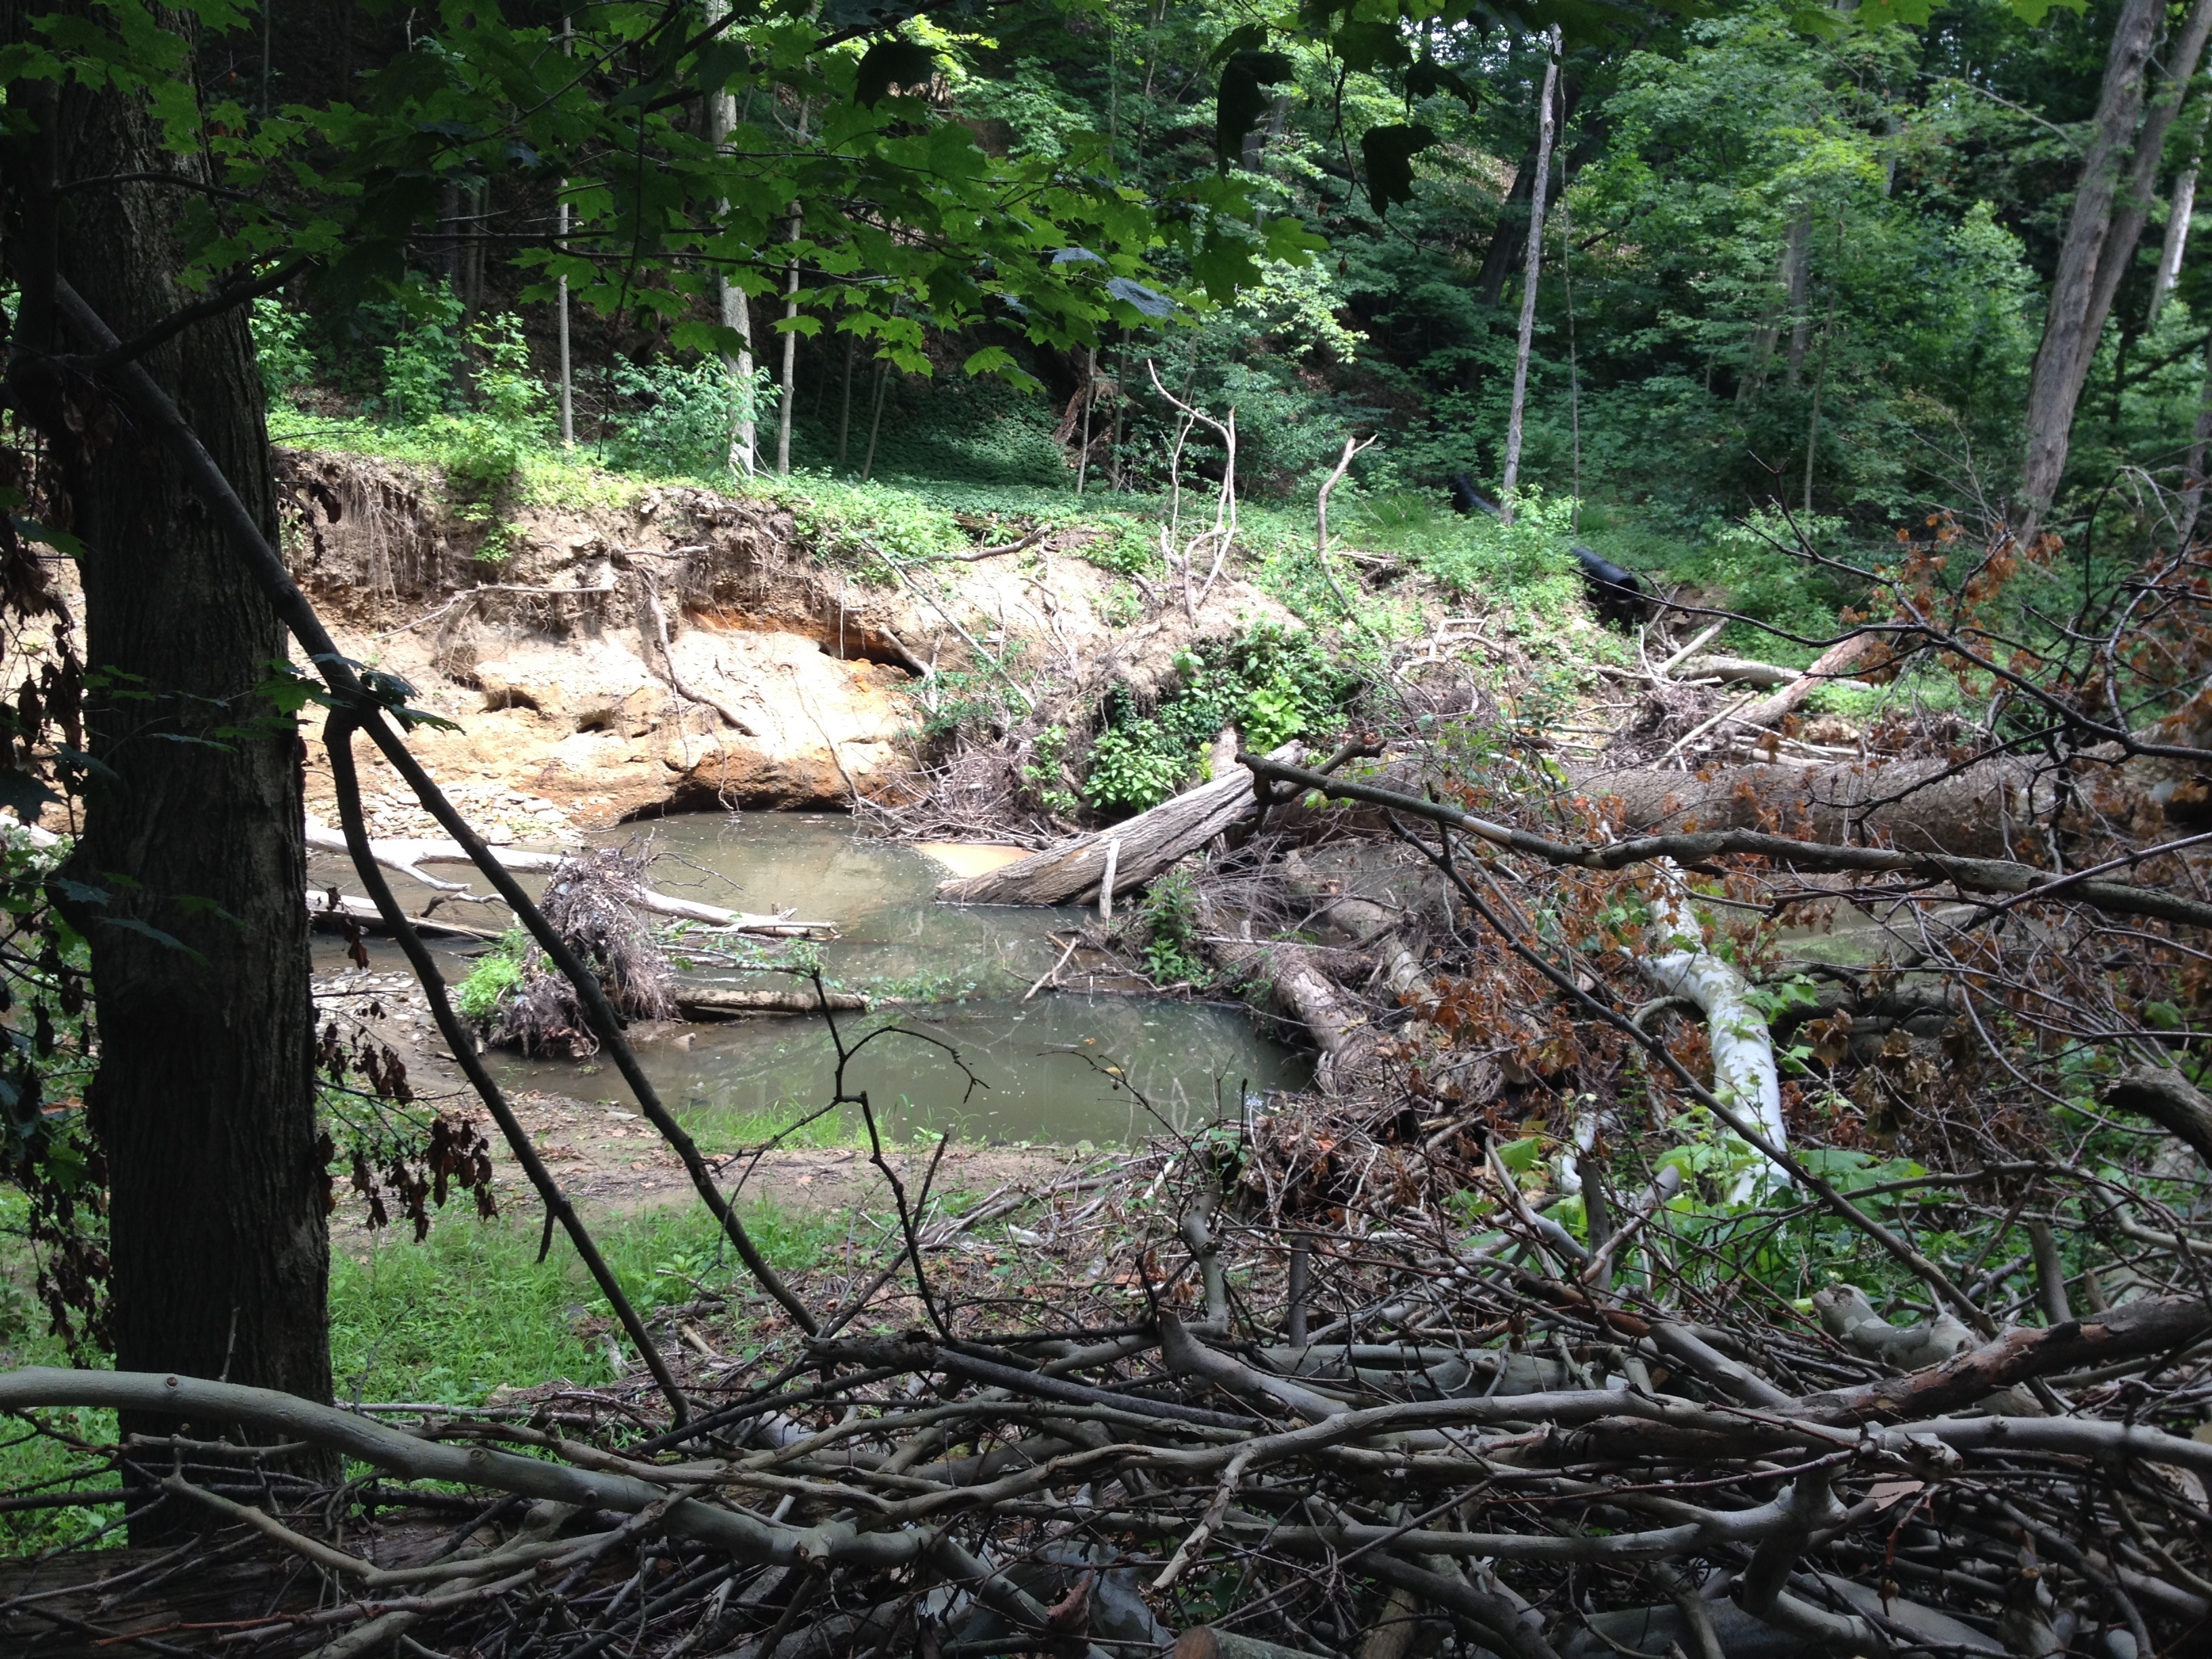 YELLOW CREEK DEVASTATION